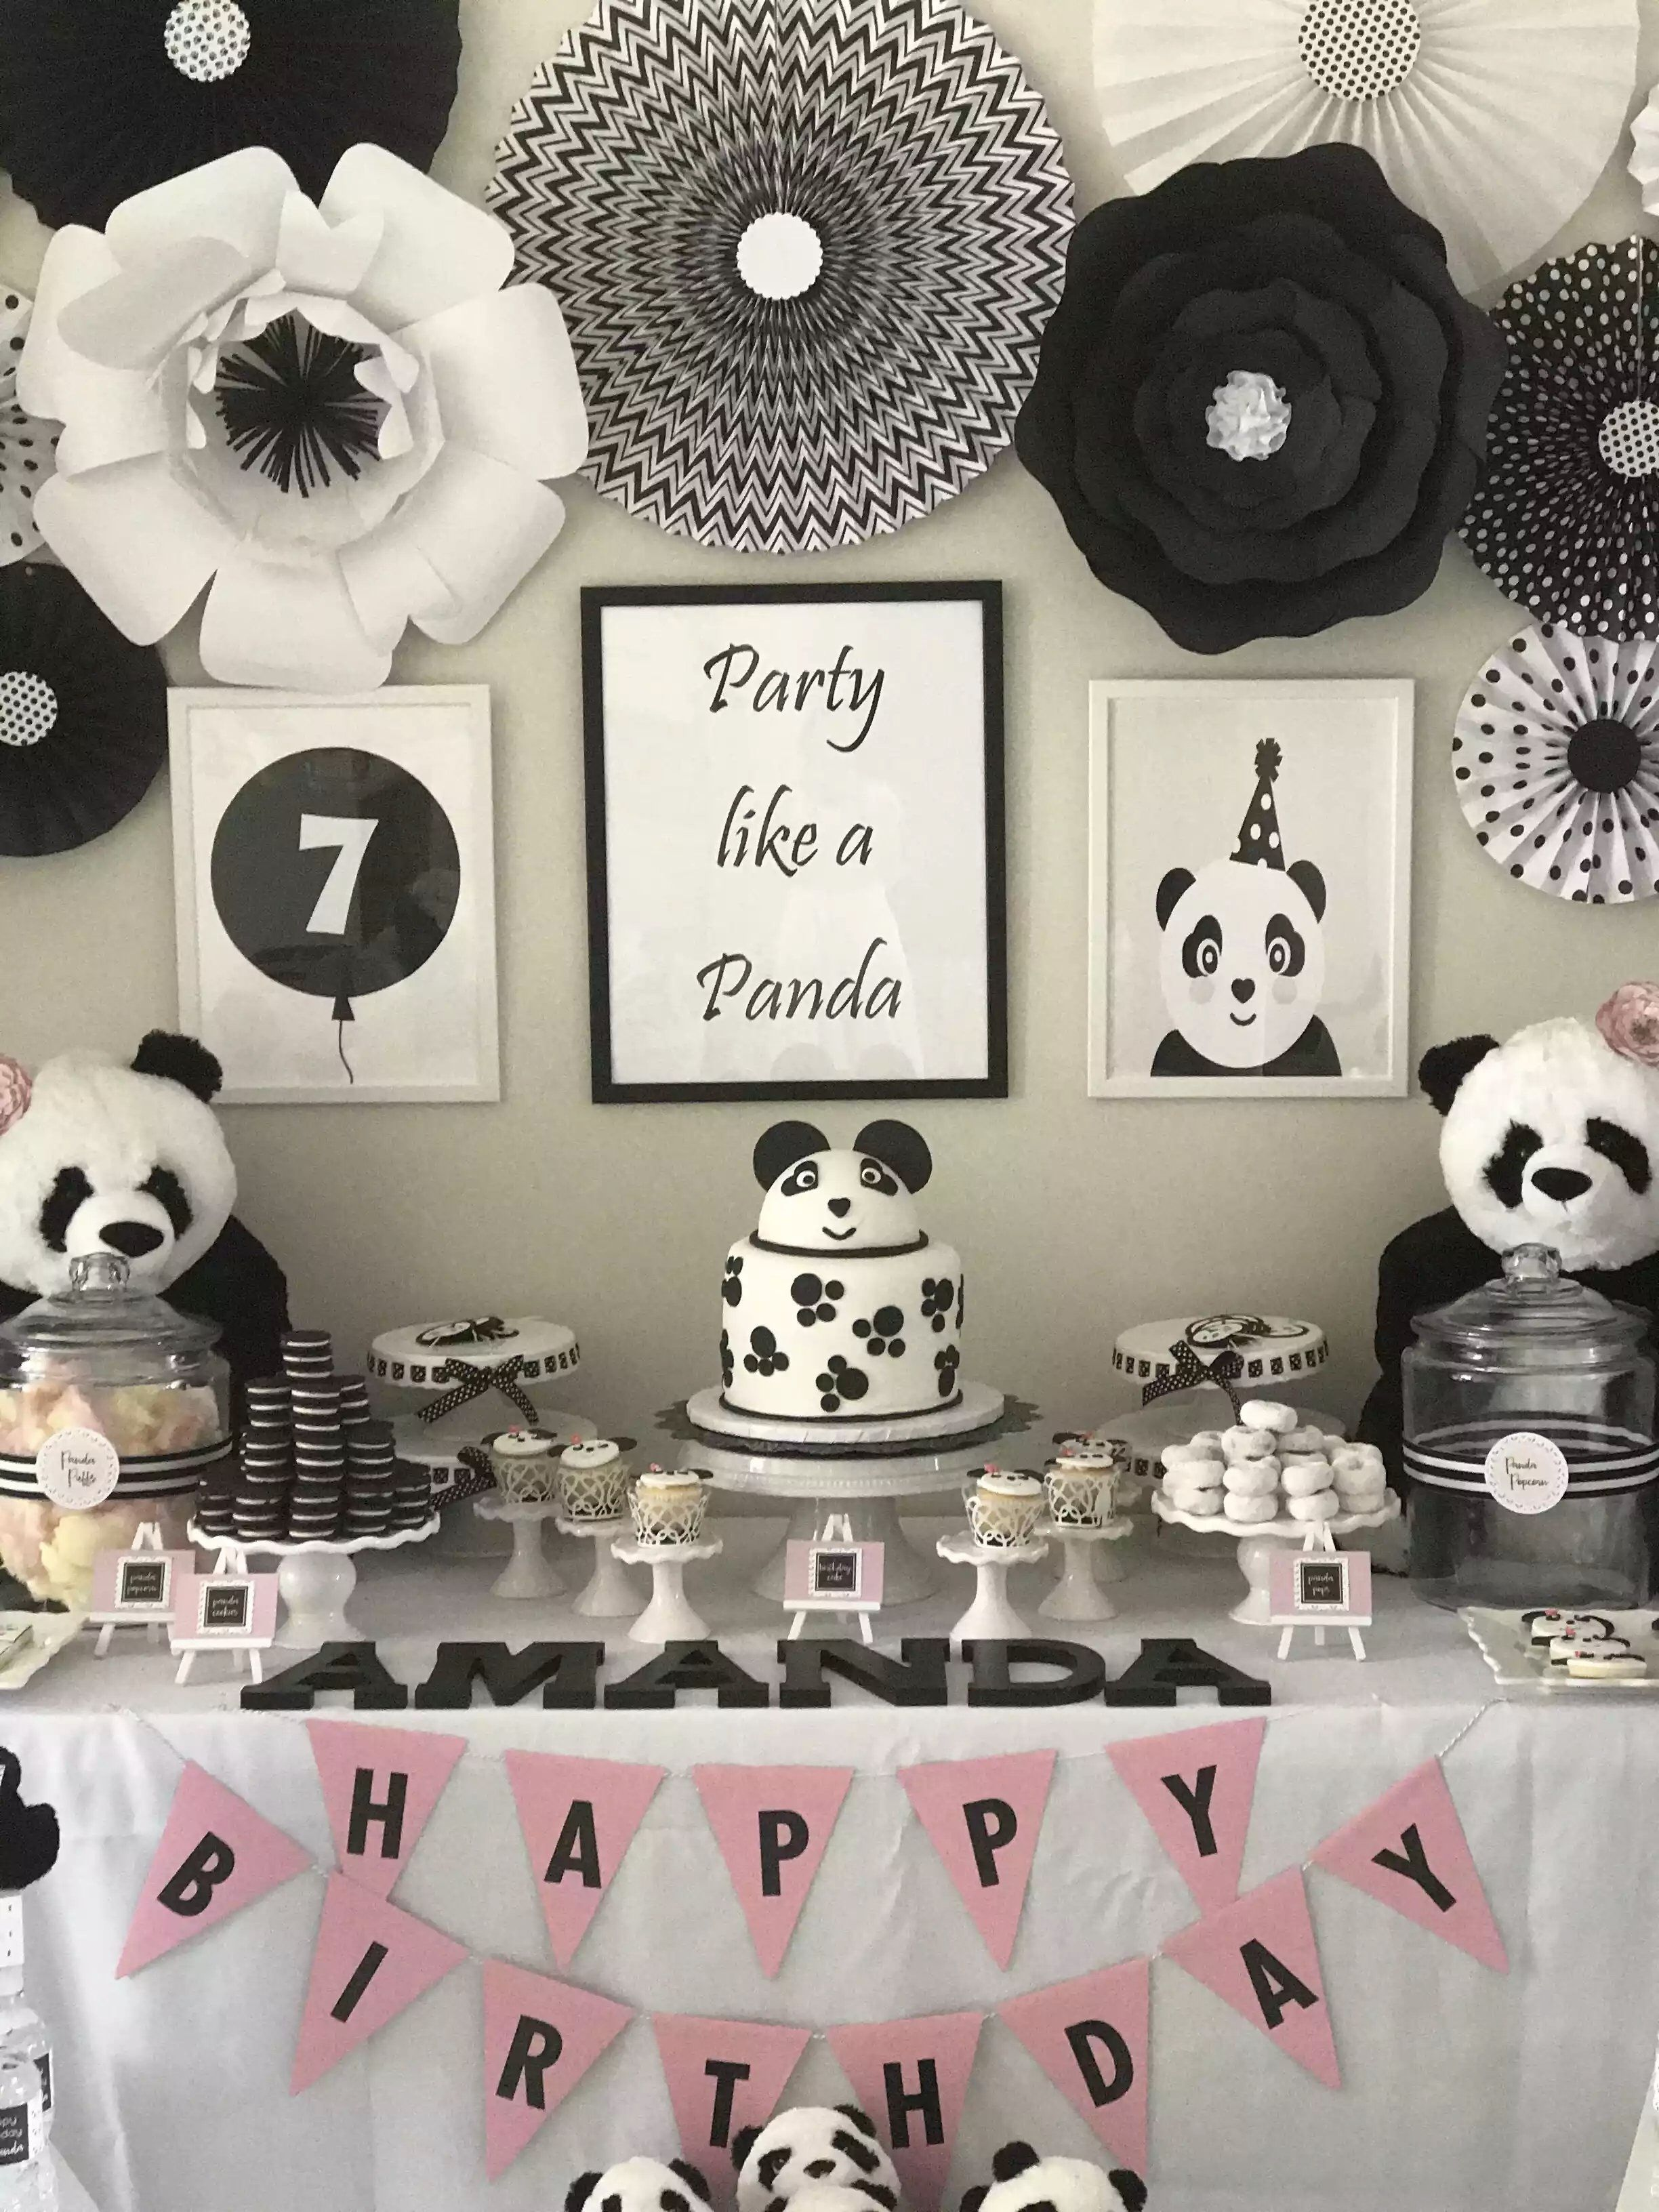 Panda Party Decorations Panda Party Favors Panda